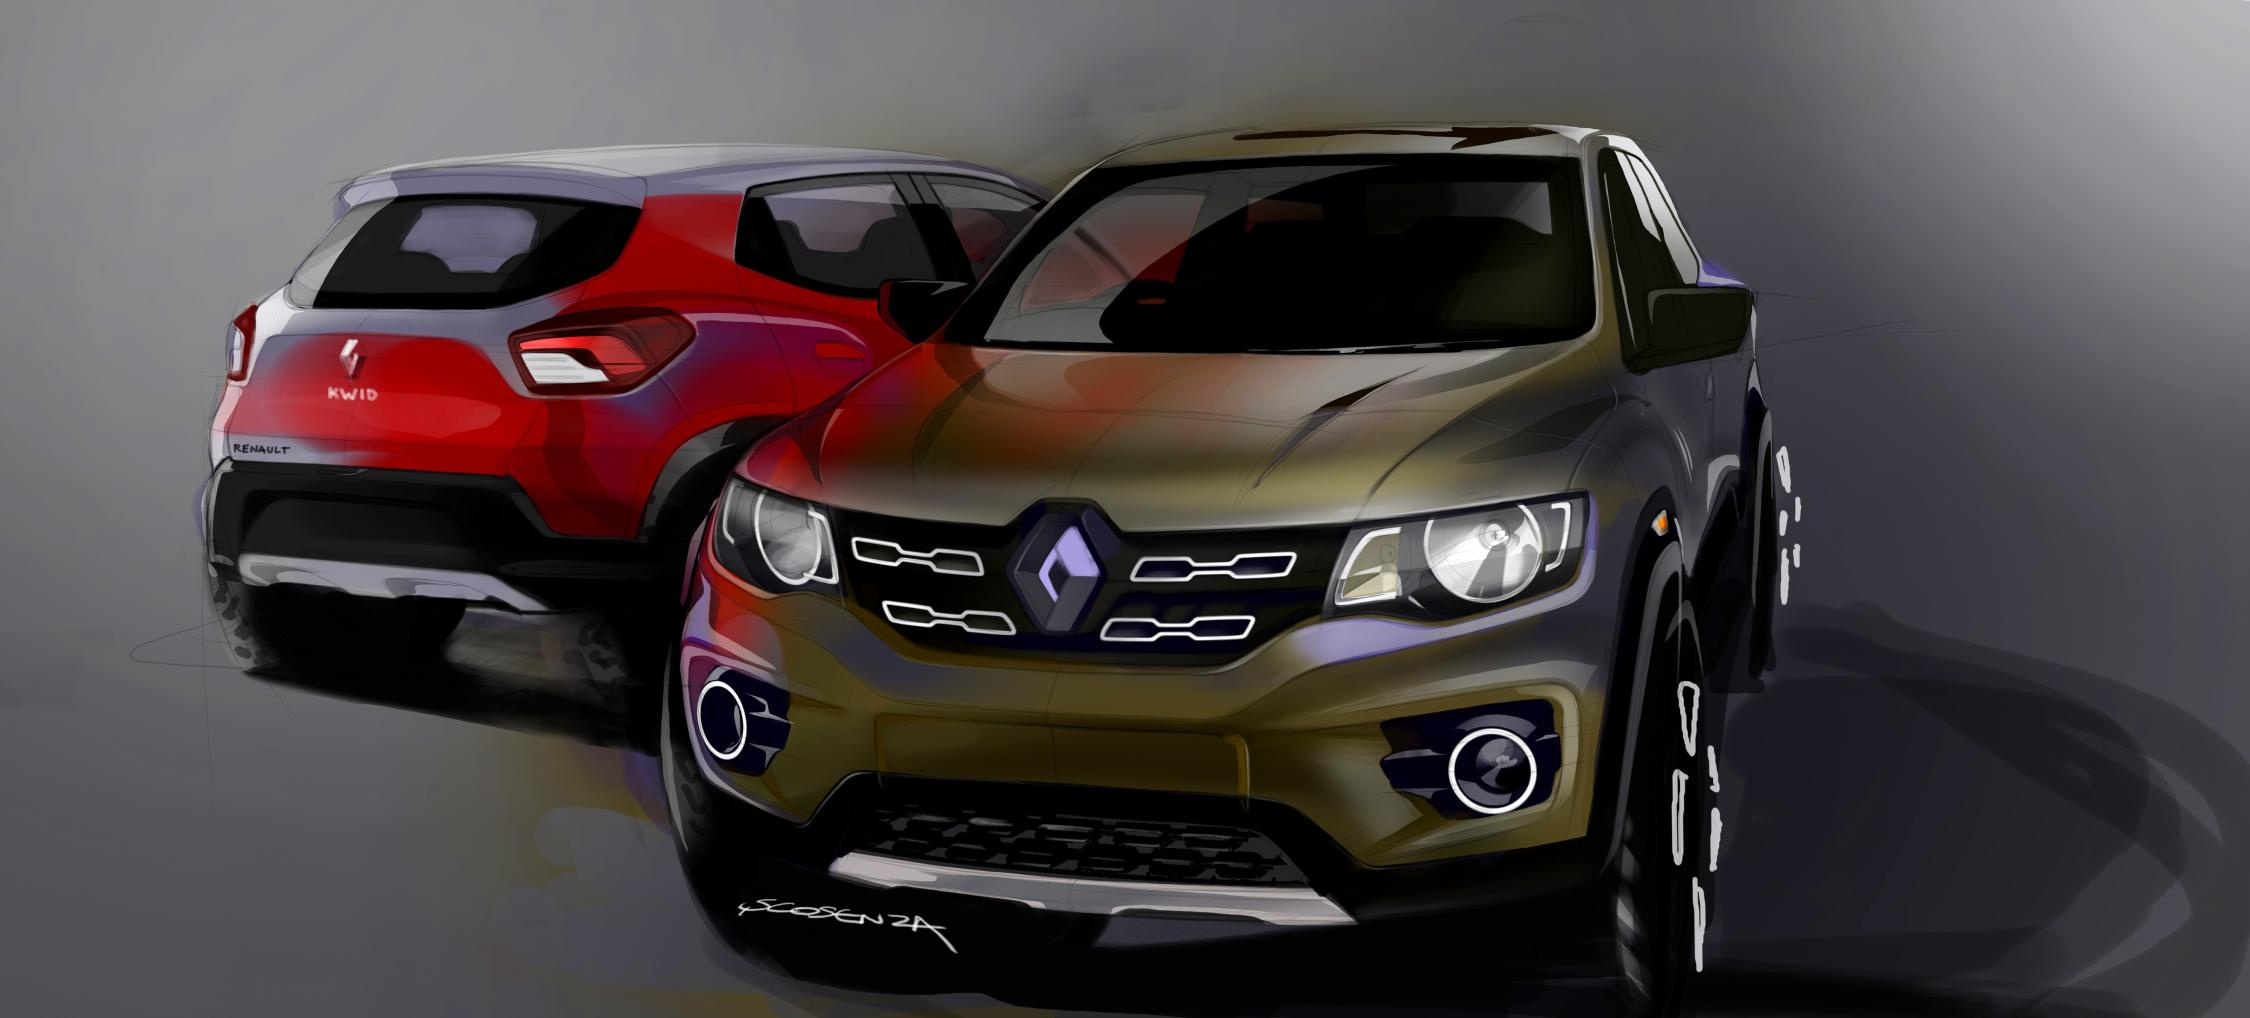 renault kwid price announced nissan to launch cmf a car within the next 12 months autoevolution. Black Bedroom Furniture Sets. Home Design Ideas